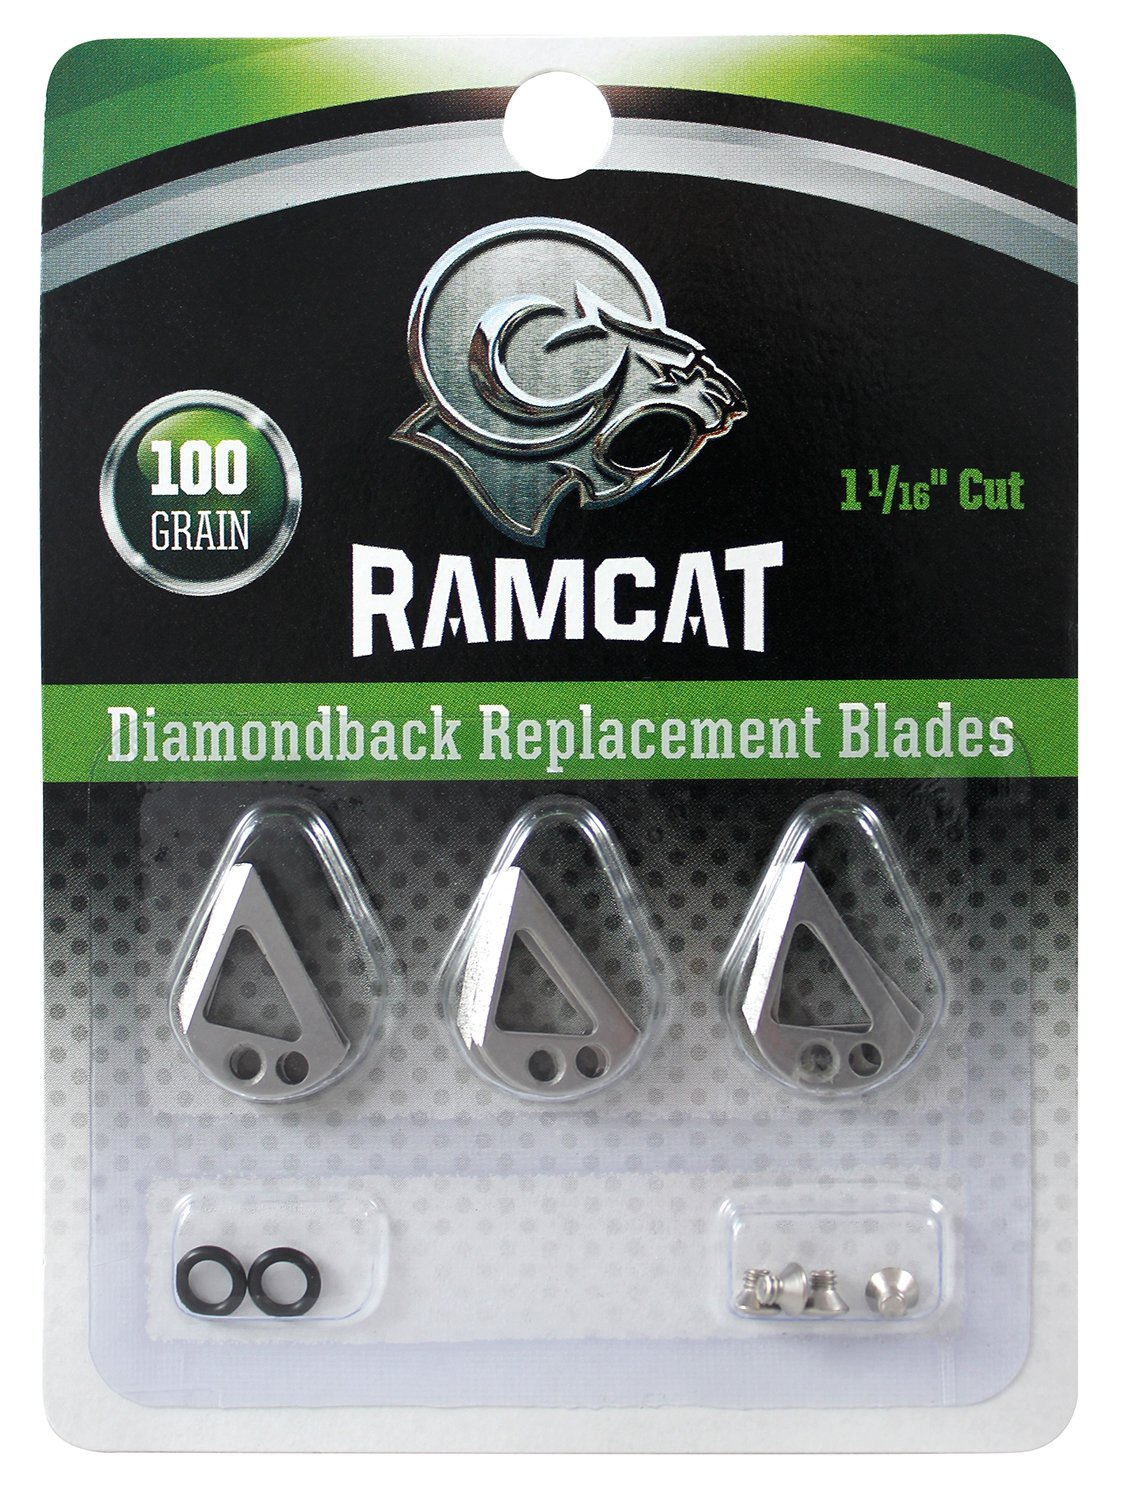 Ramcat Diamondback Broadheads Replacement Blades 100 gr. 9 Pk., Silver